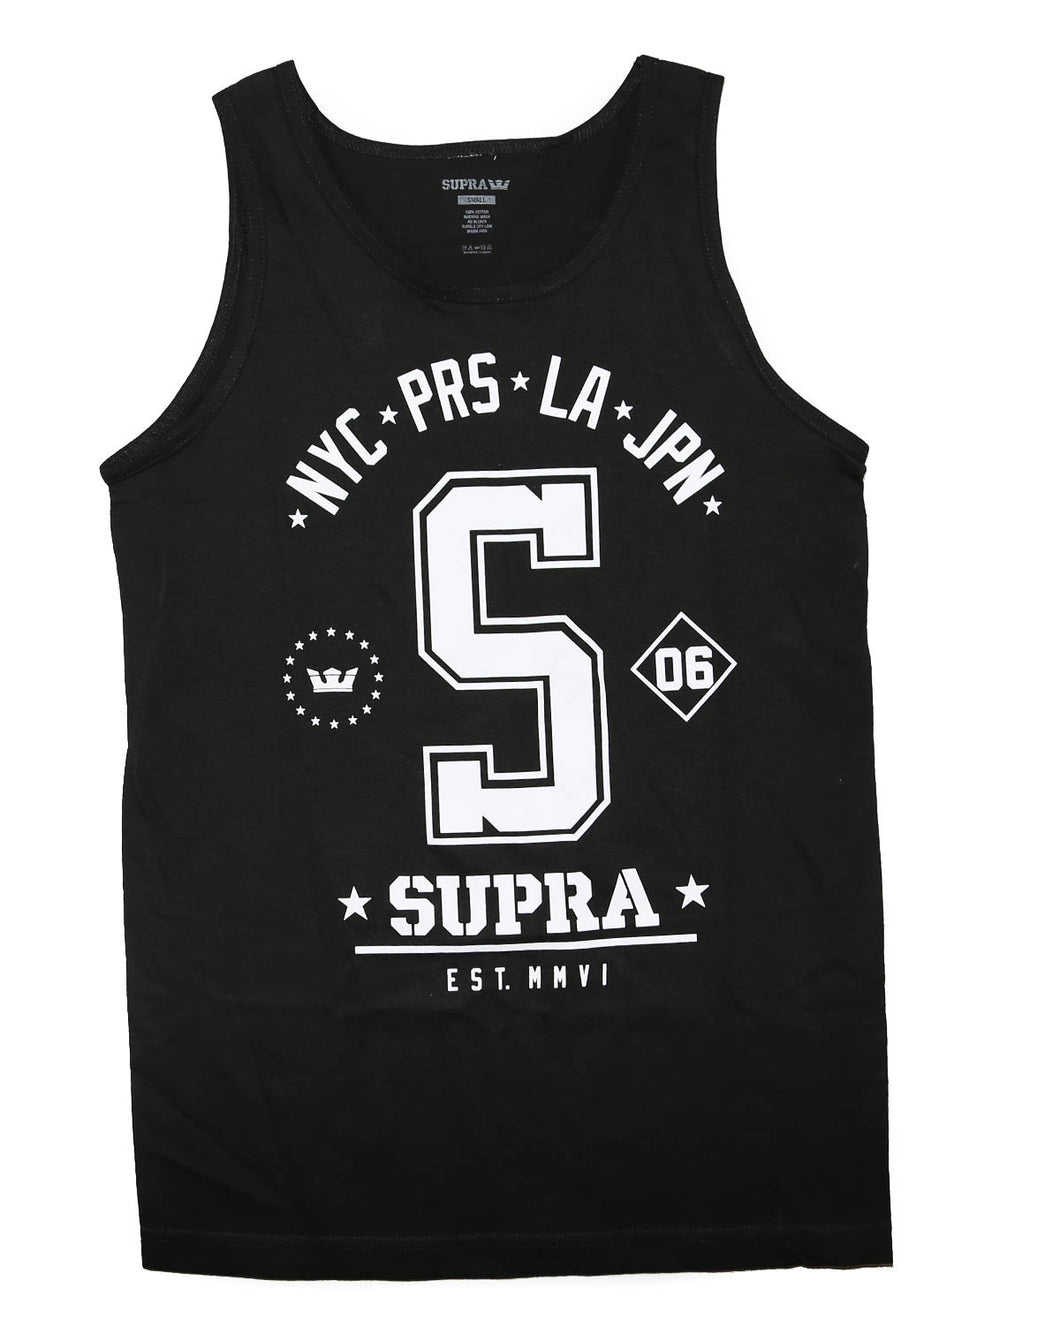 SUPRA World Wide Tank